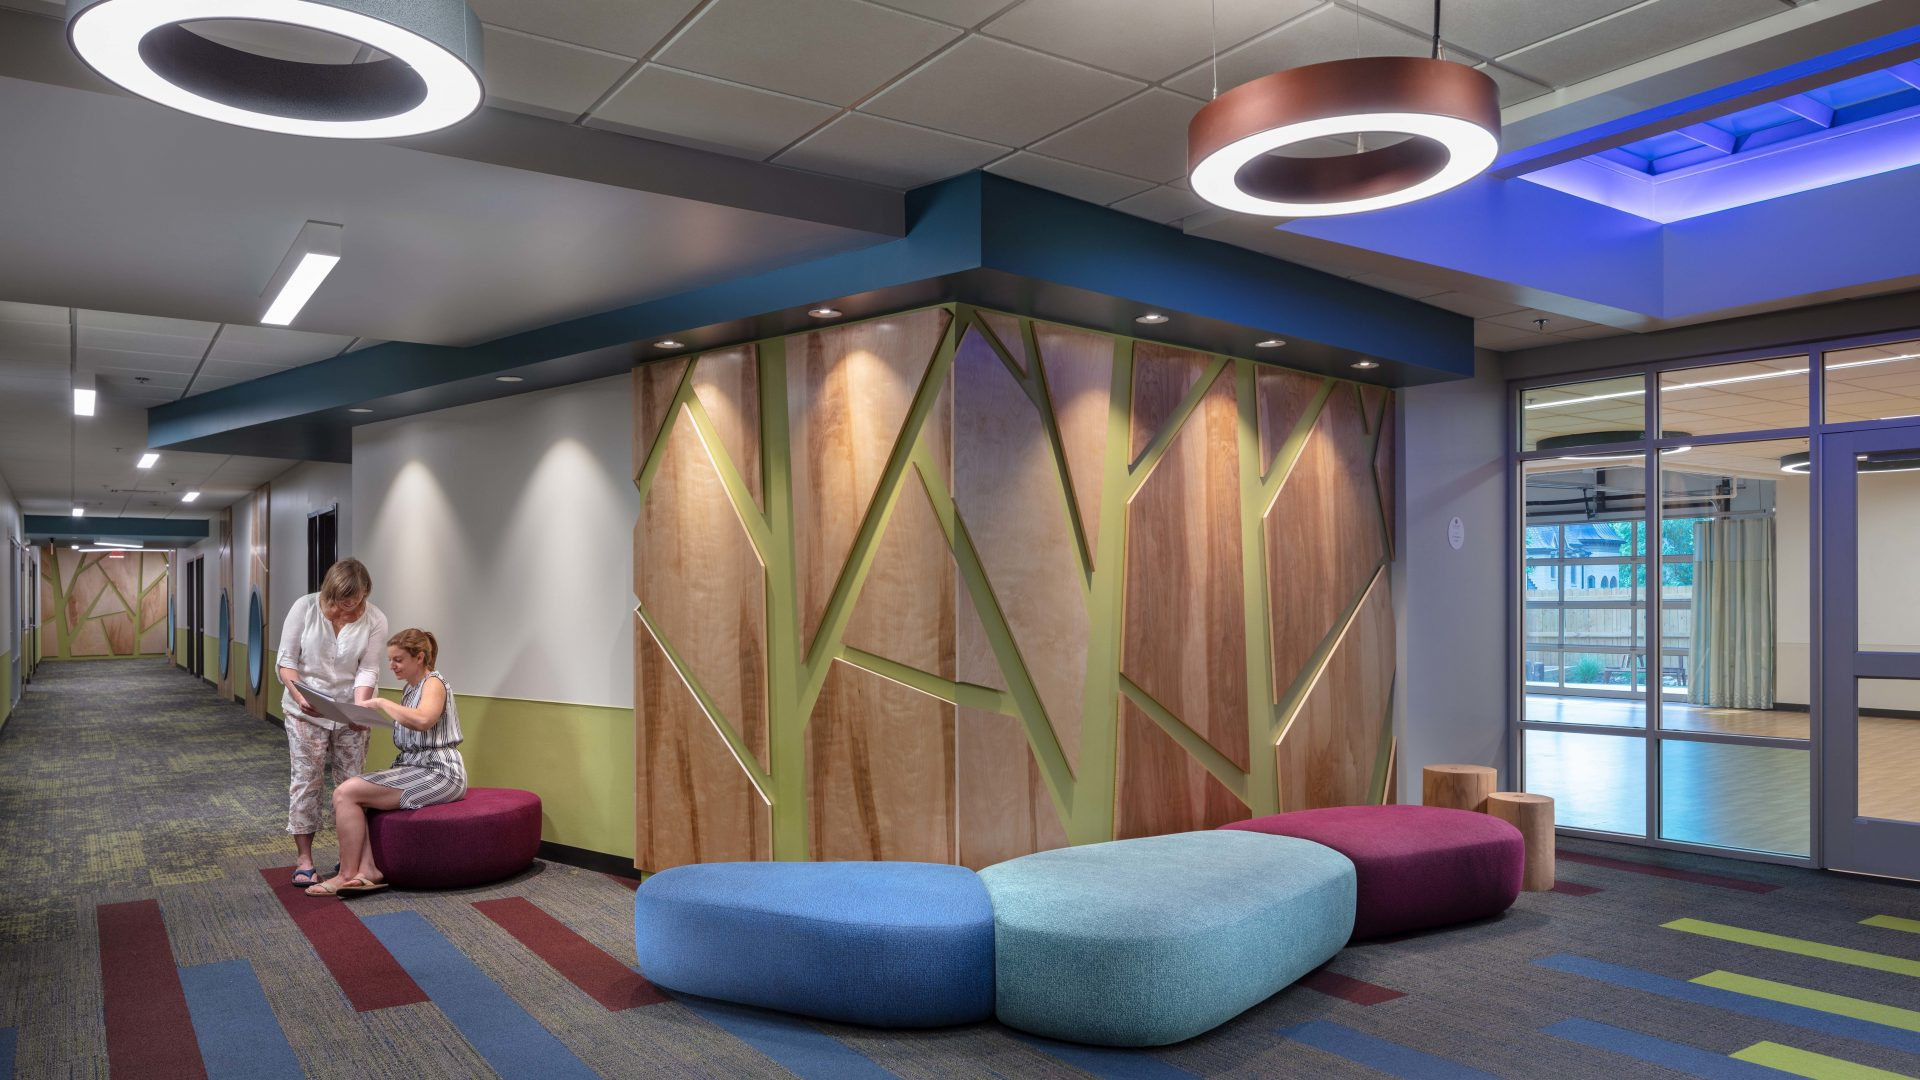 Breakout spaces are purposely positioned throughout the ELC